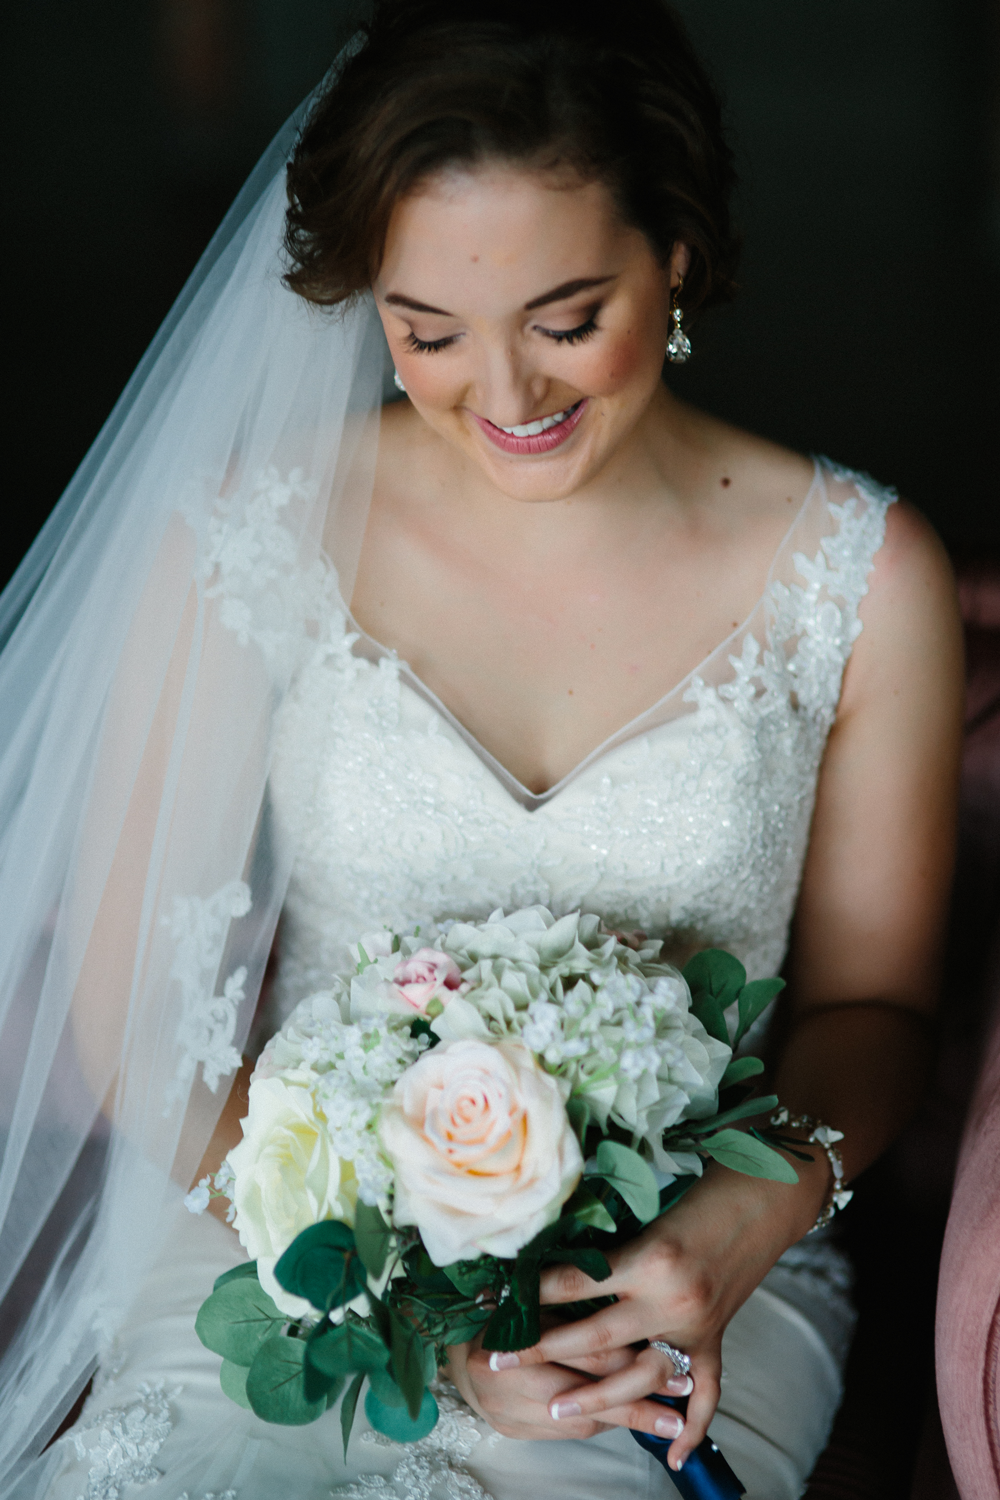 How to make a silk flower bouquet pinterest artificial flowers make your own bridal bouquet with artificial flowers from afloral designed by emily weeks photographed by genna v photography izmirmasajfo